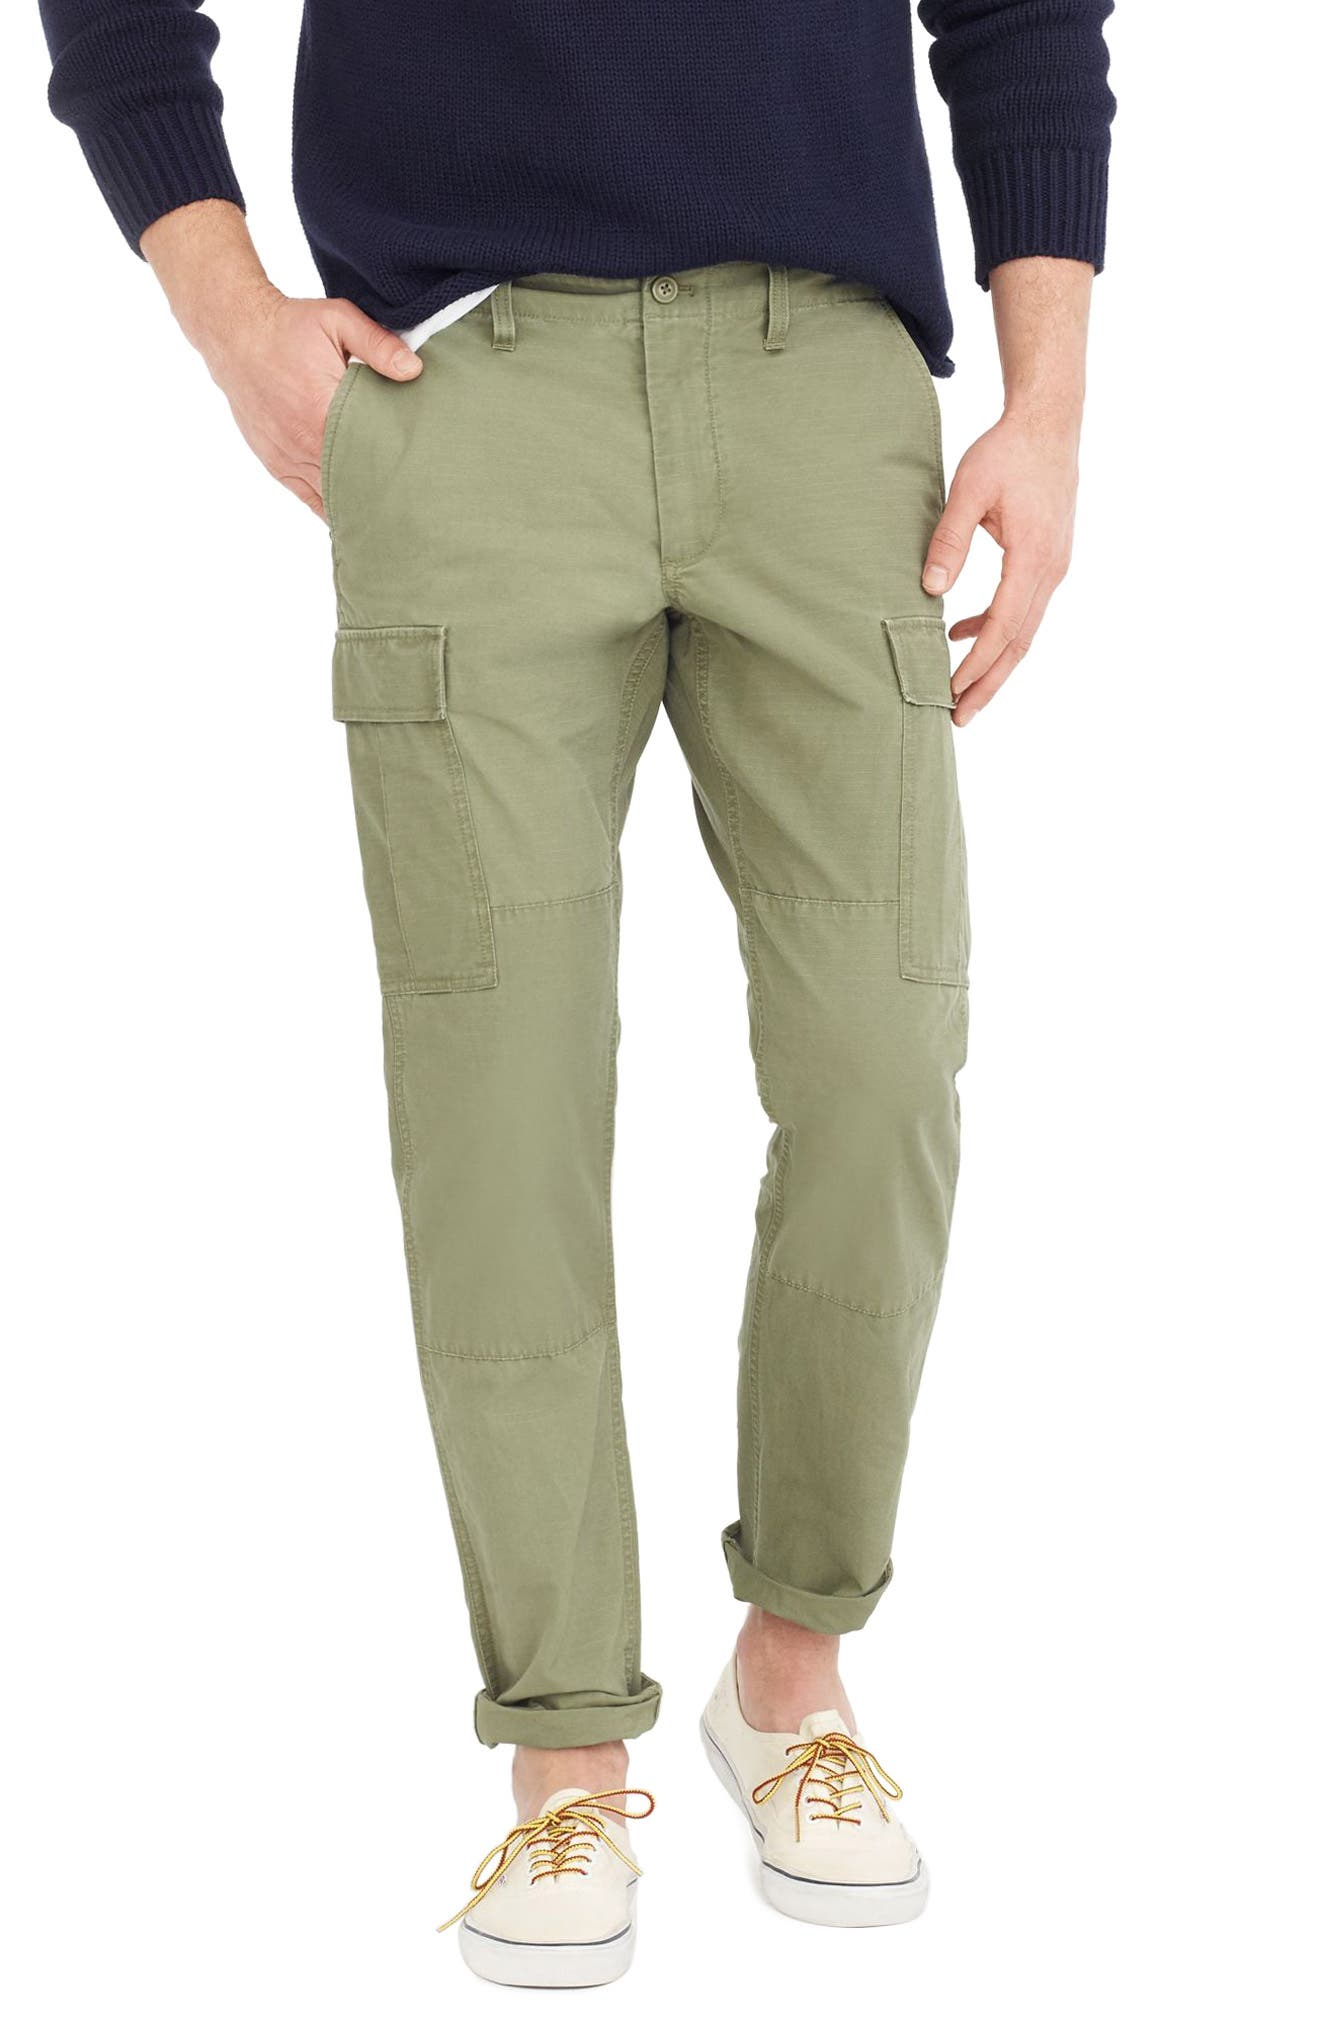 770 Straight Fit Ripstop Cargo Pants,                         Main,                         color, 300